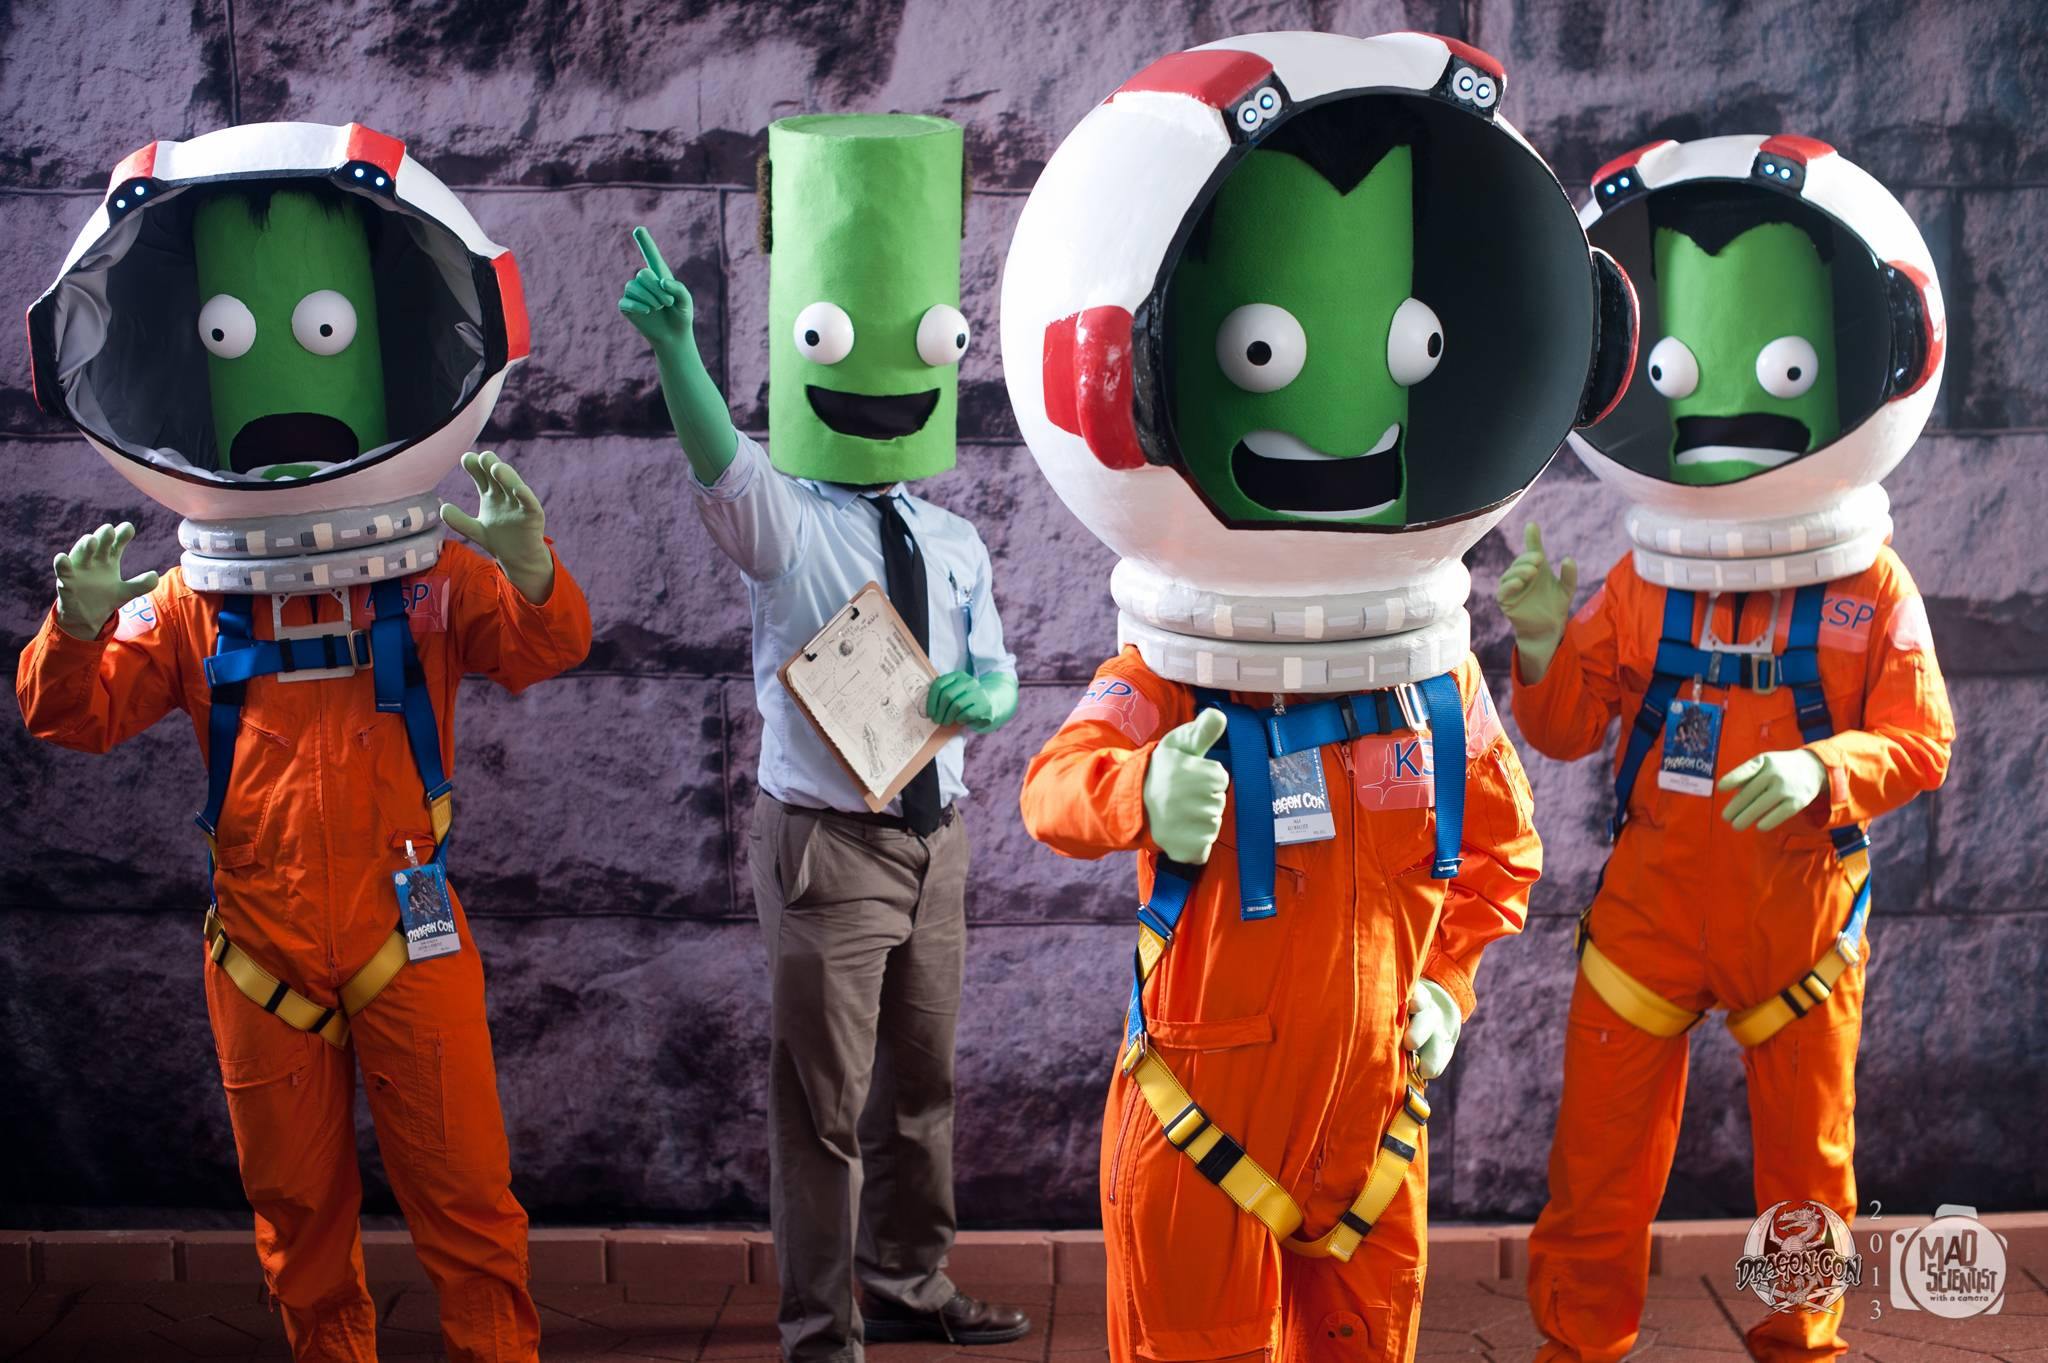 Going to DragonCon as Kerbals